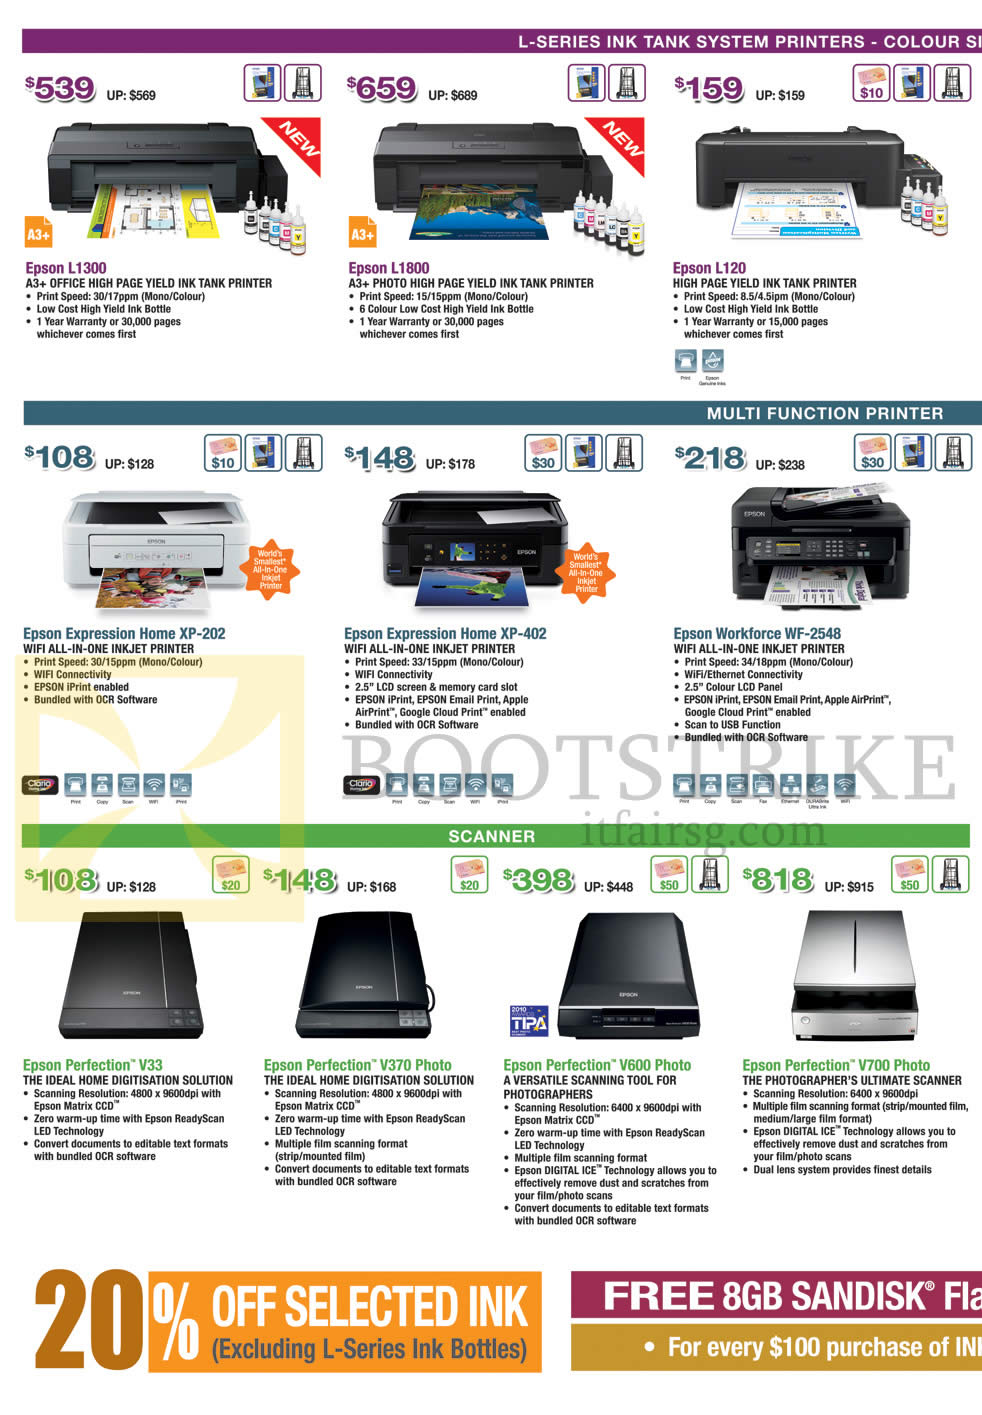 Epson Printers Scanners L Series Ink Tank System